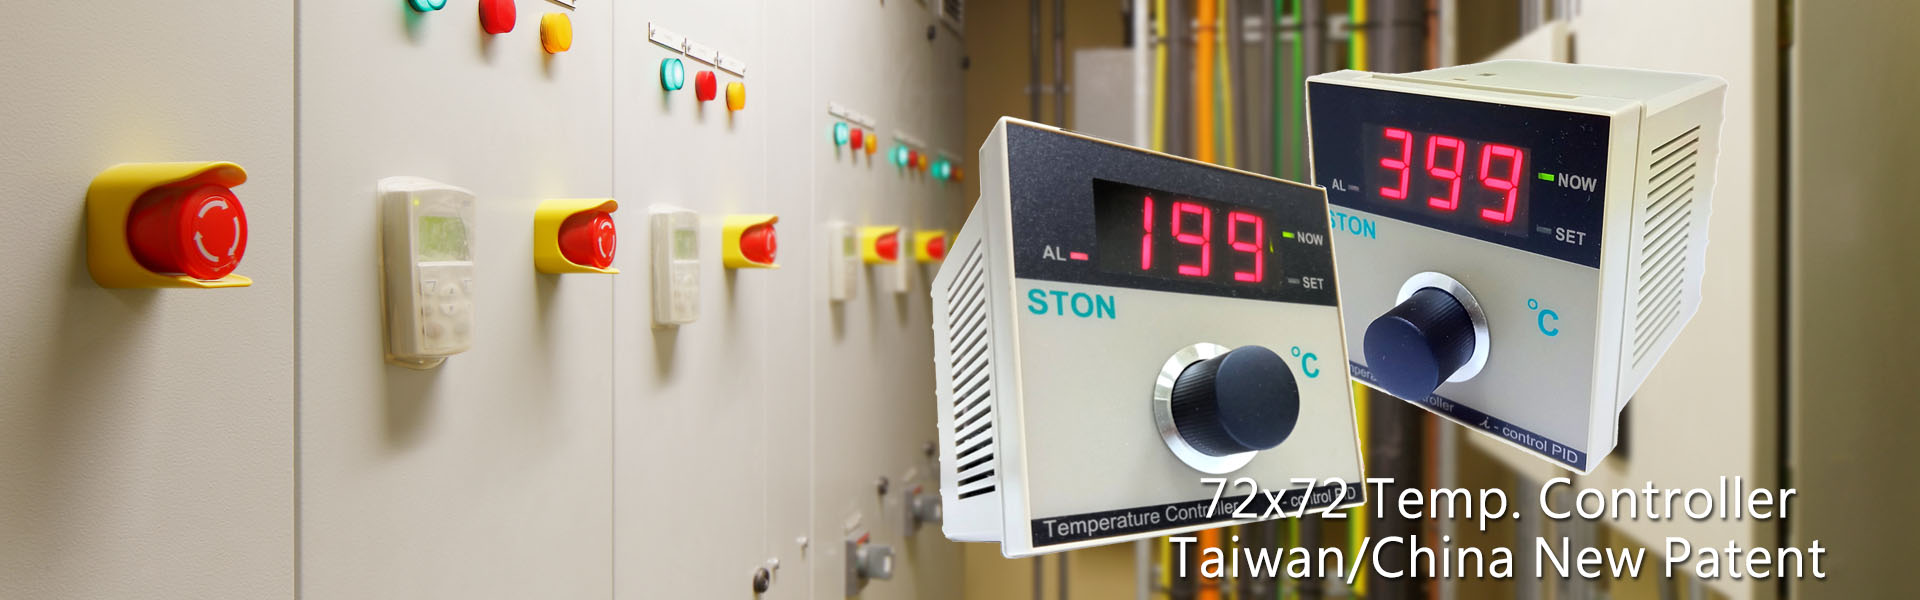 72*72 Temp. Controller Taiwan/China New Patent